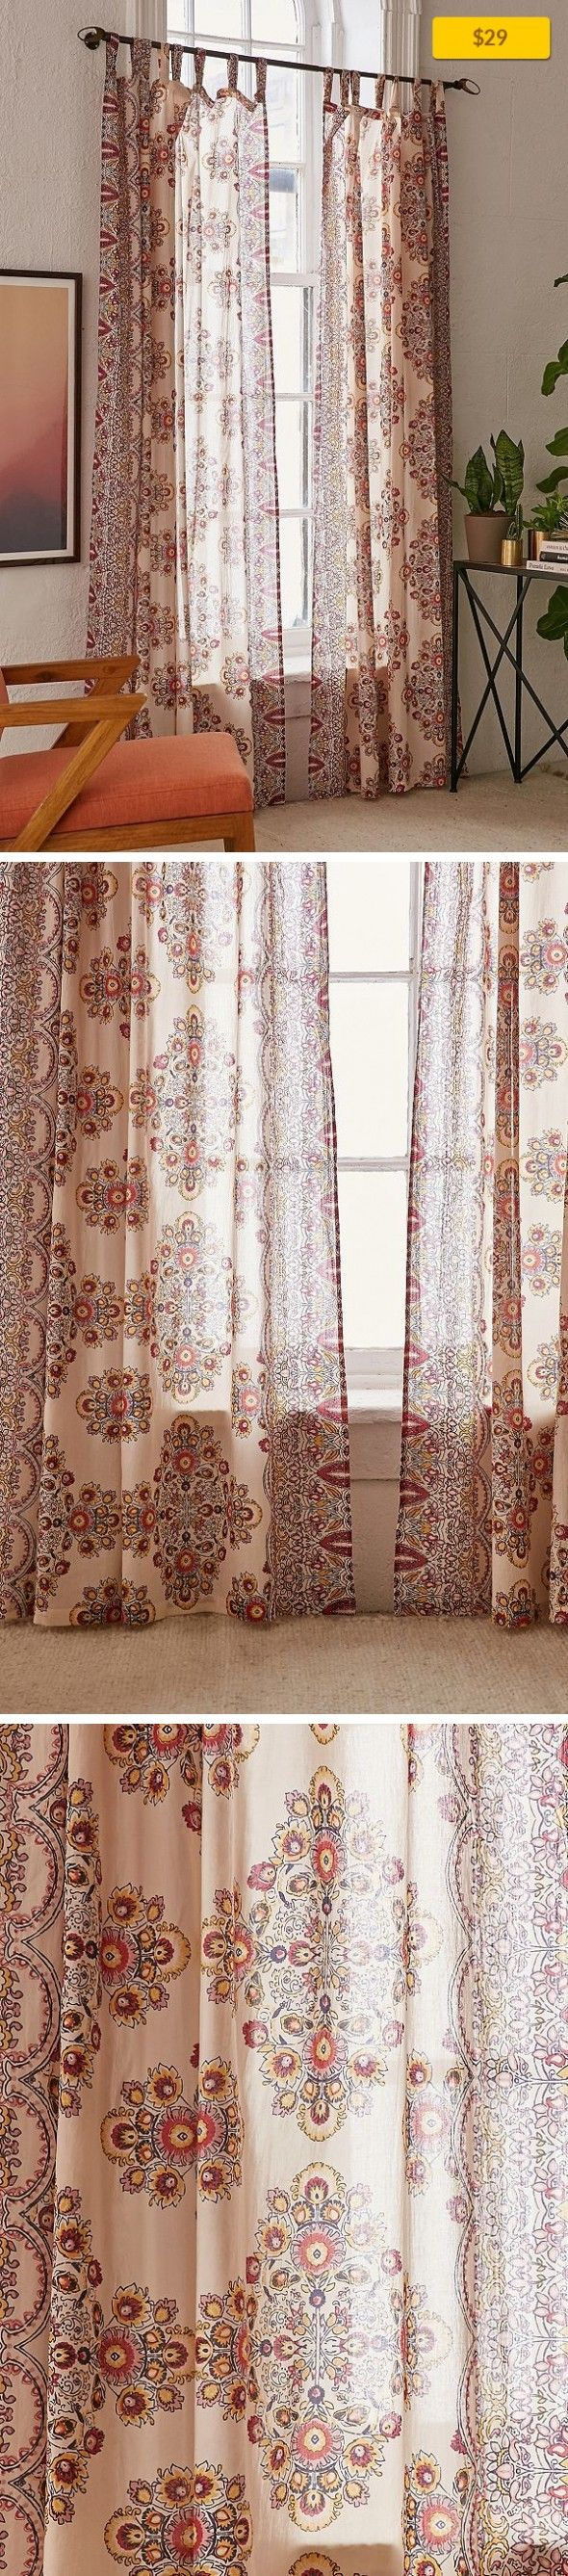 Tamara Curtain Sale, Apartment Sale, Rugs, Curtains + Tapestries Semi Sheer  Window Panel Crafted From Soft Cotton. Topped With An Allover Bold Graphic  We ...